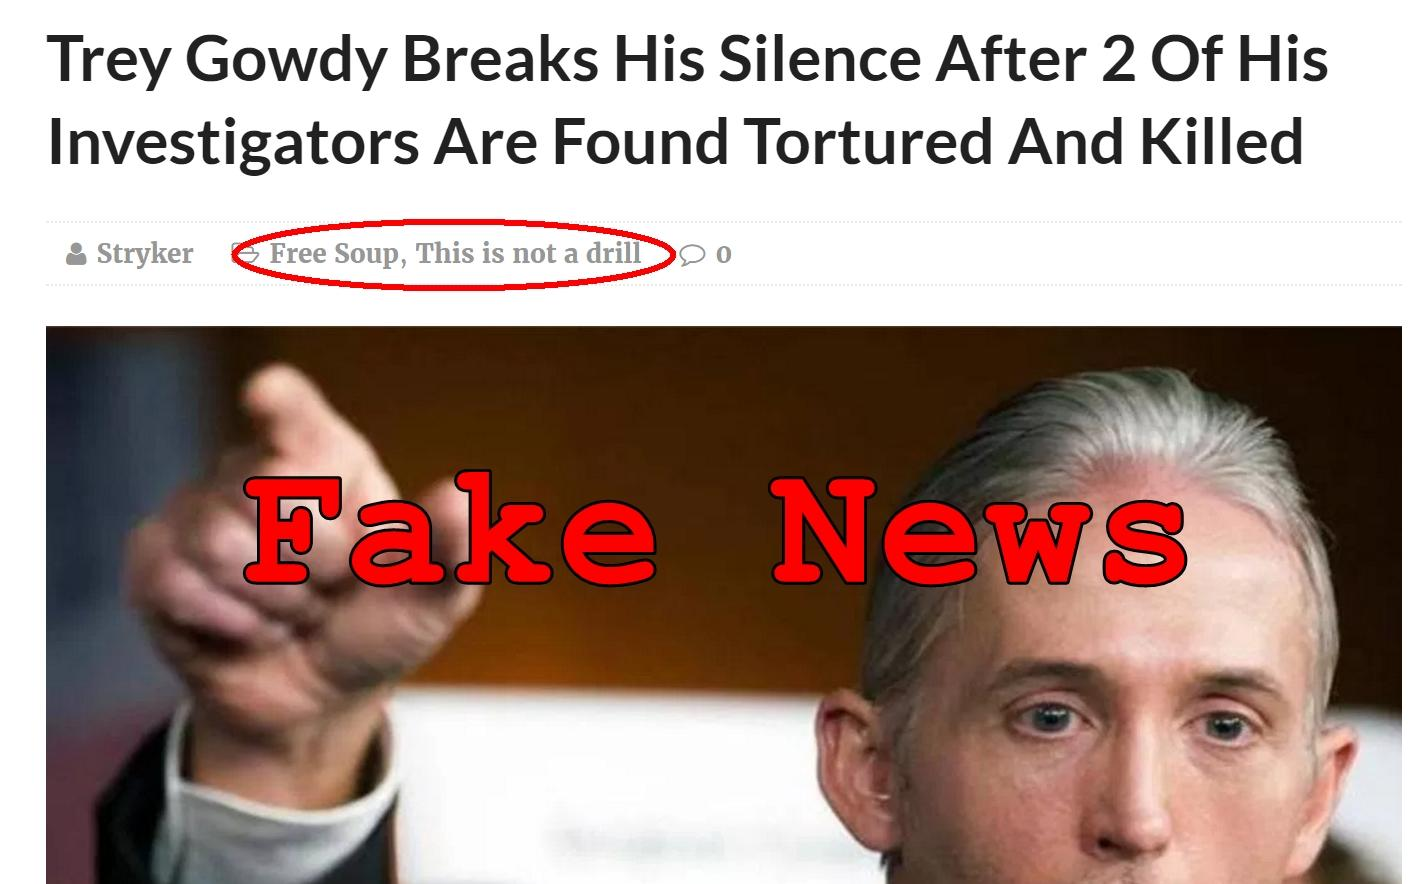 Fake News: Trey Gowdy Did NOT Break His Silence, NONE Of His Investigators Found Tortured And Killed